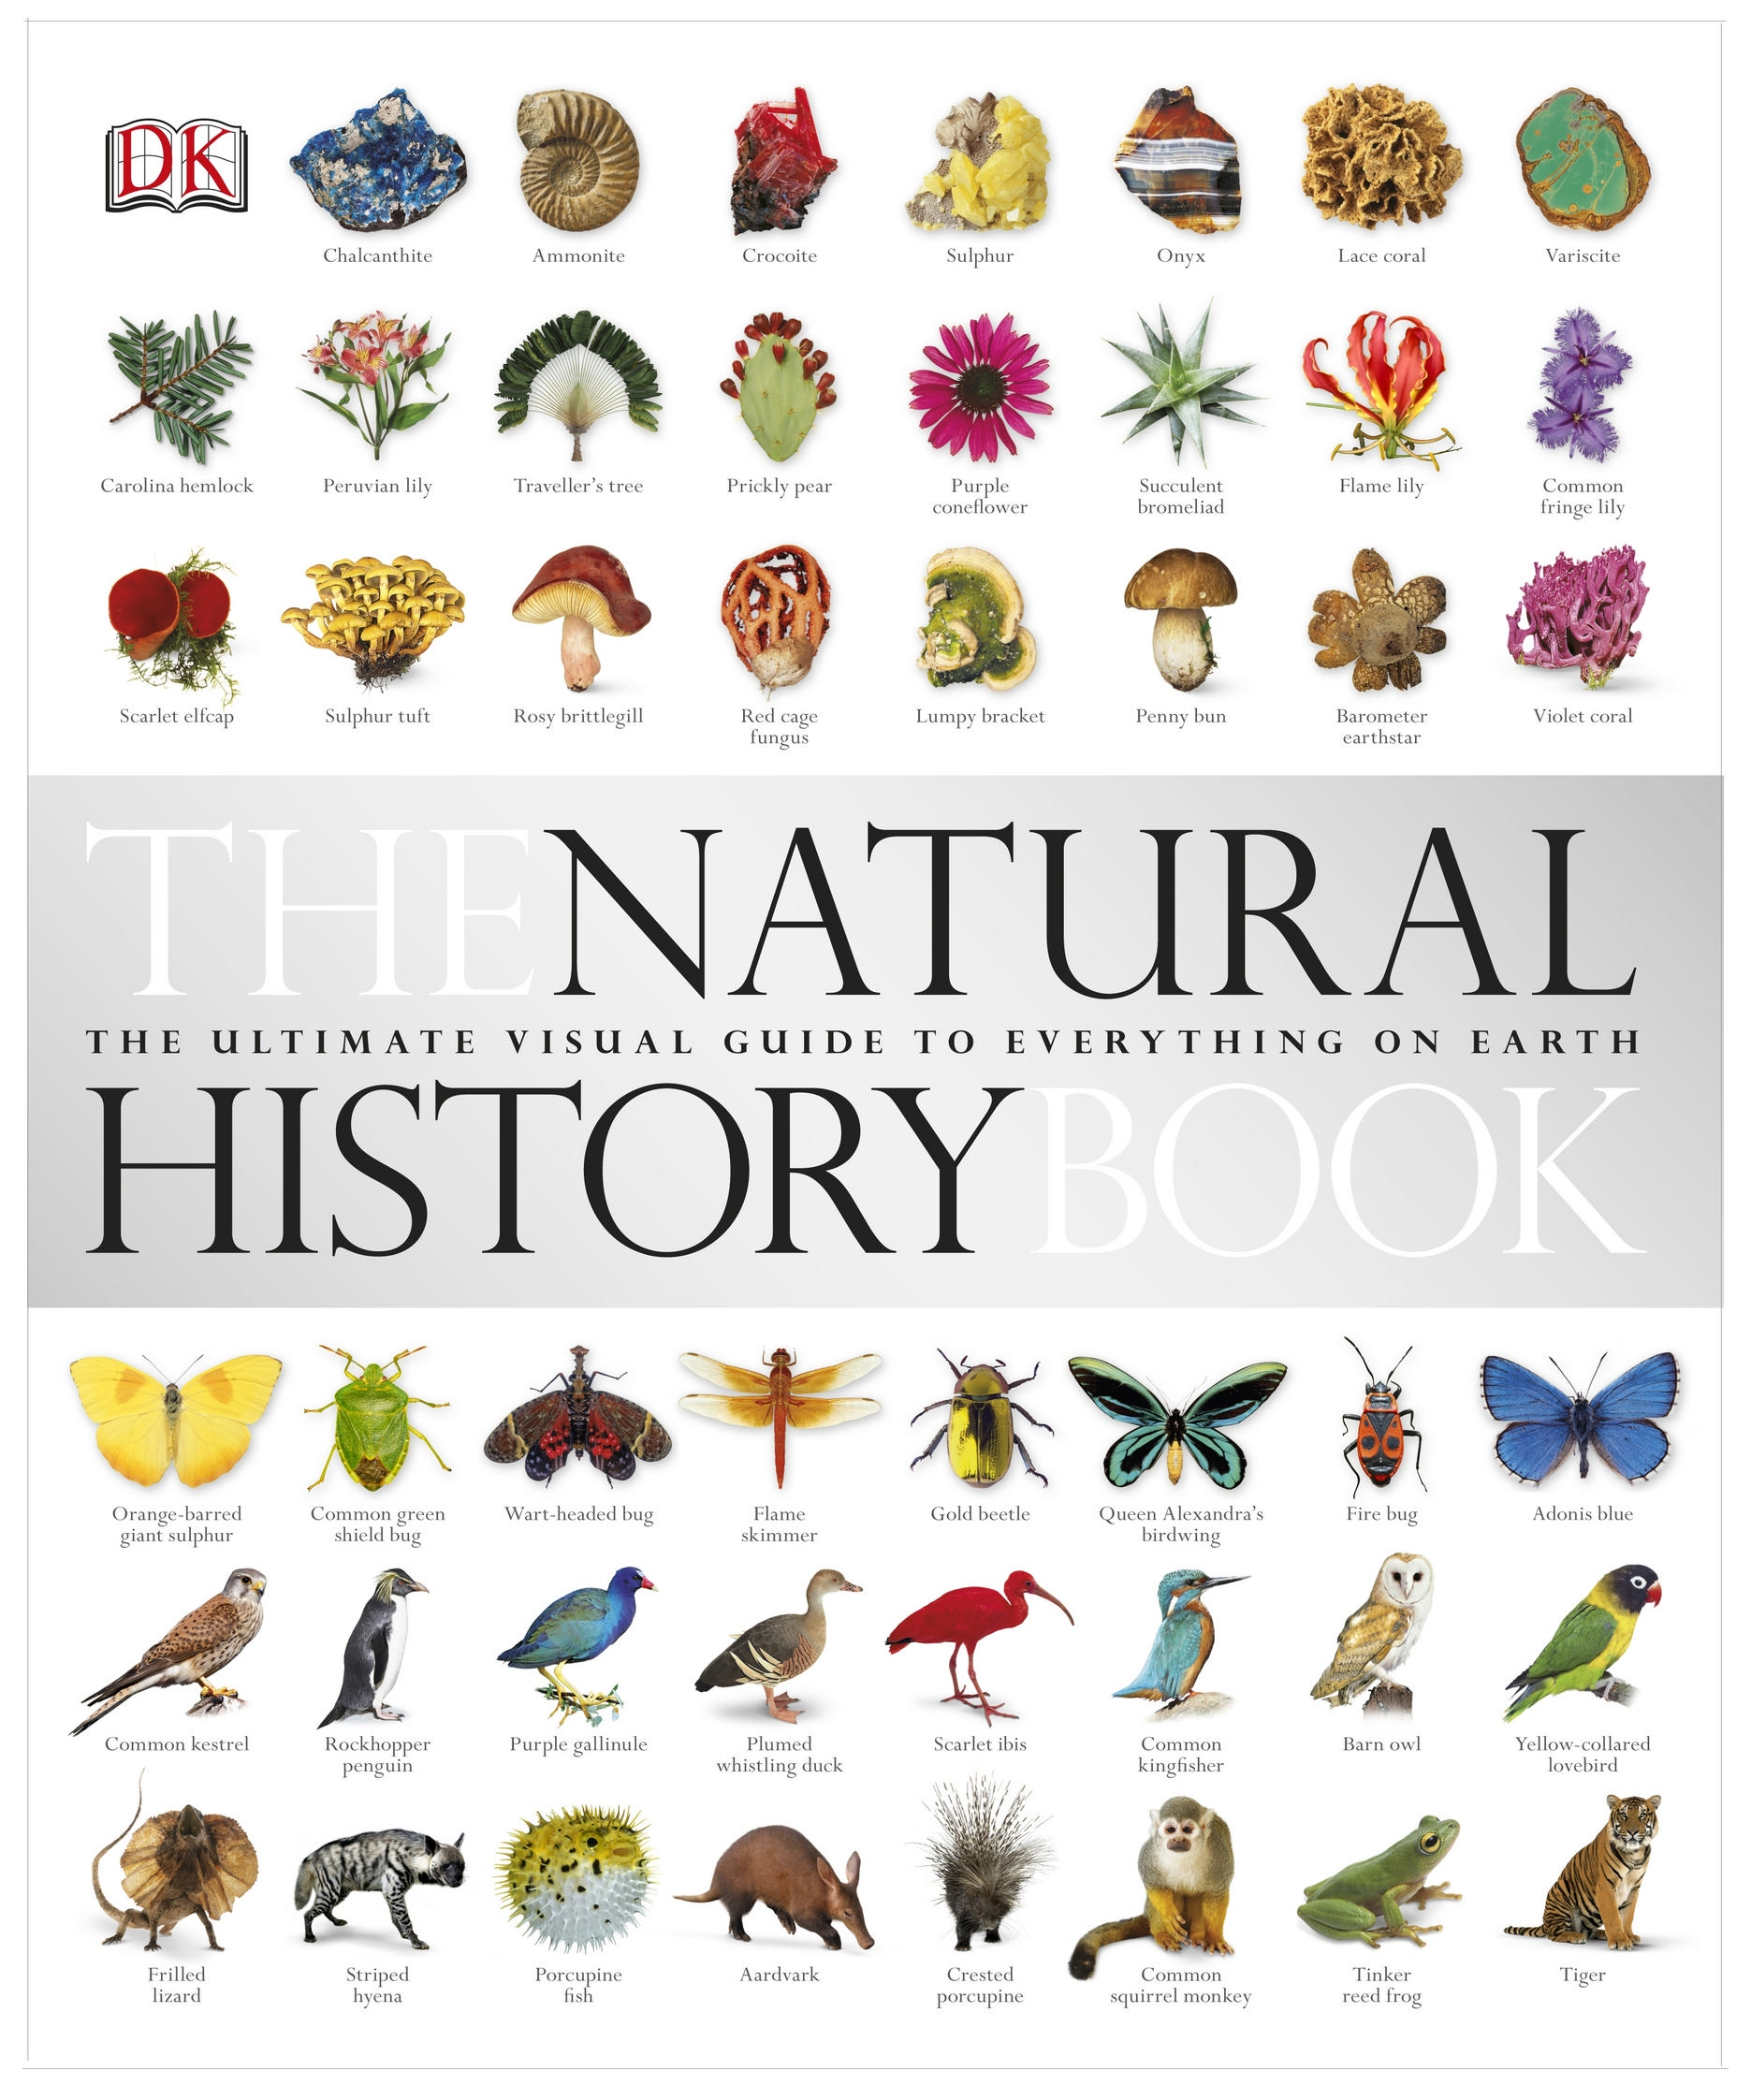 The Natural History Book by David Burnie, ISBN: 9781405336994